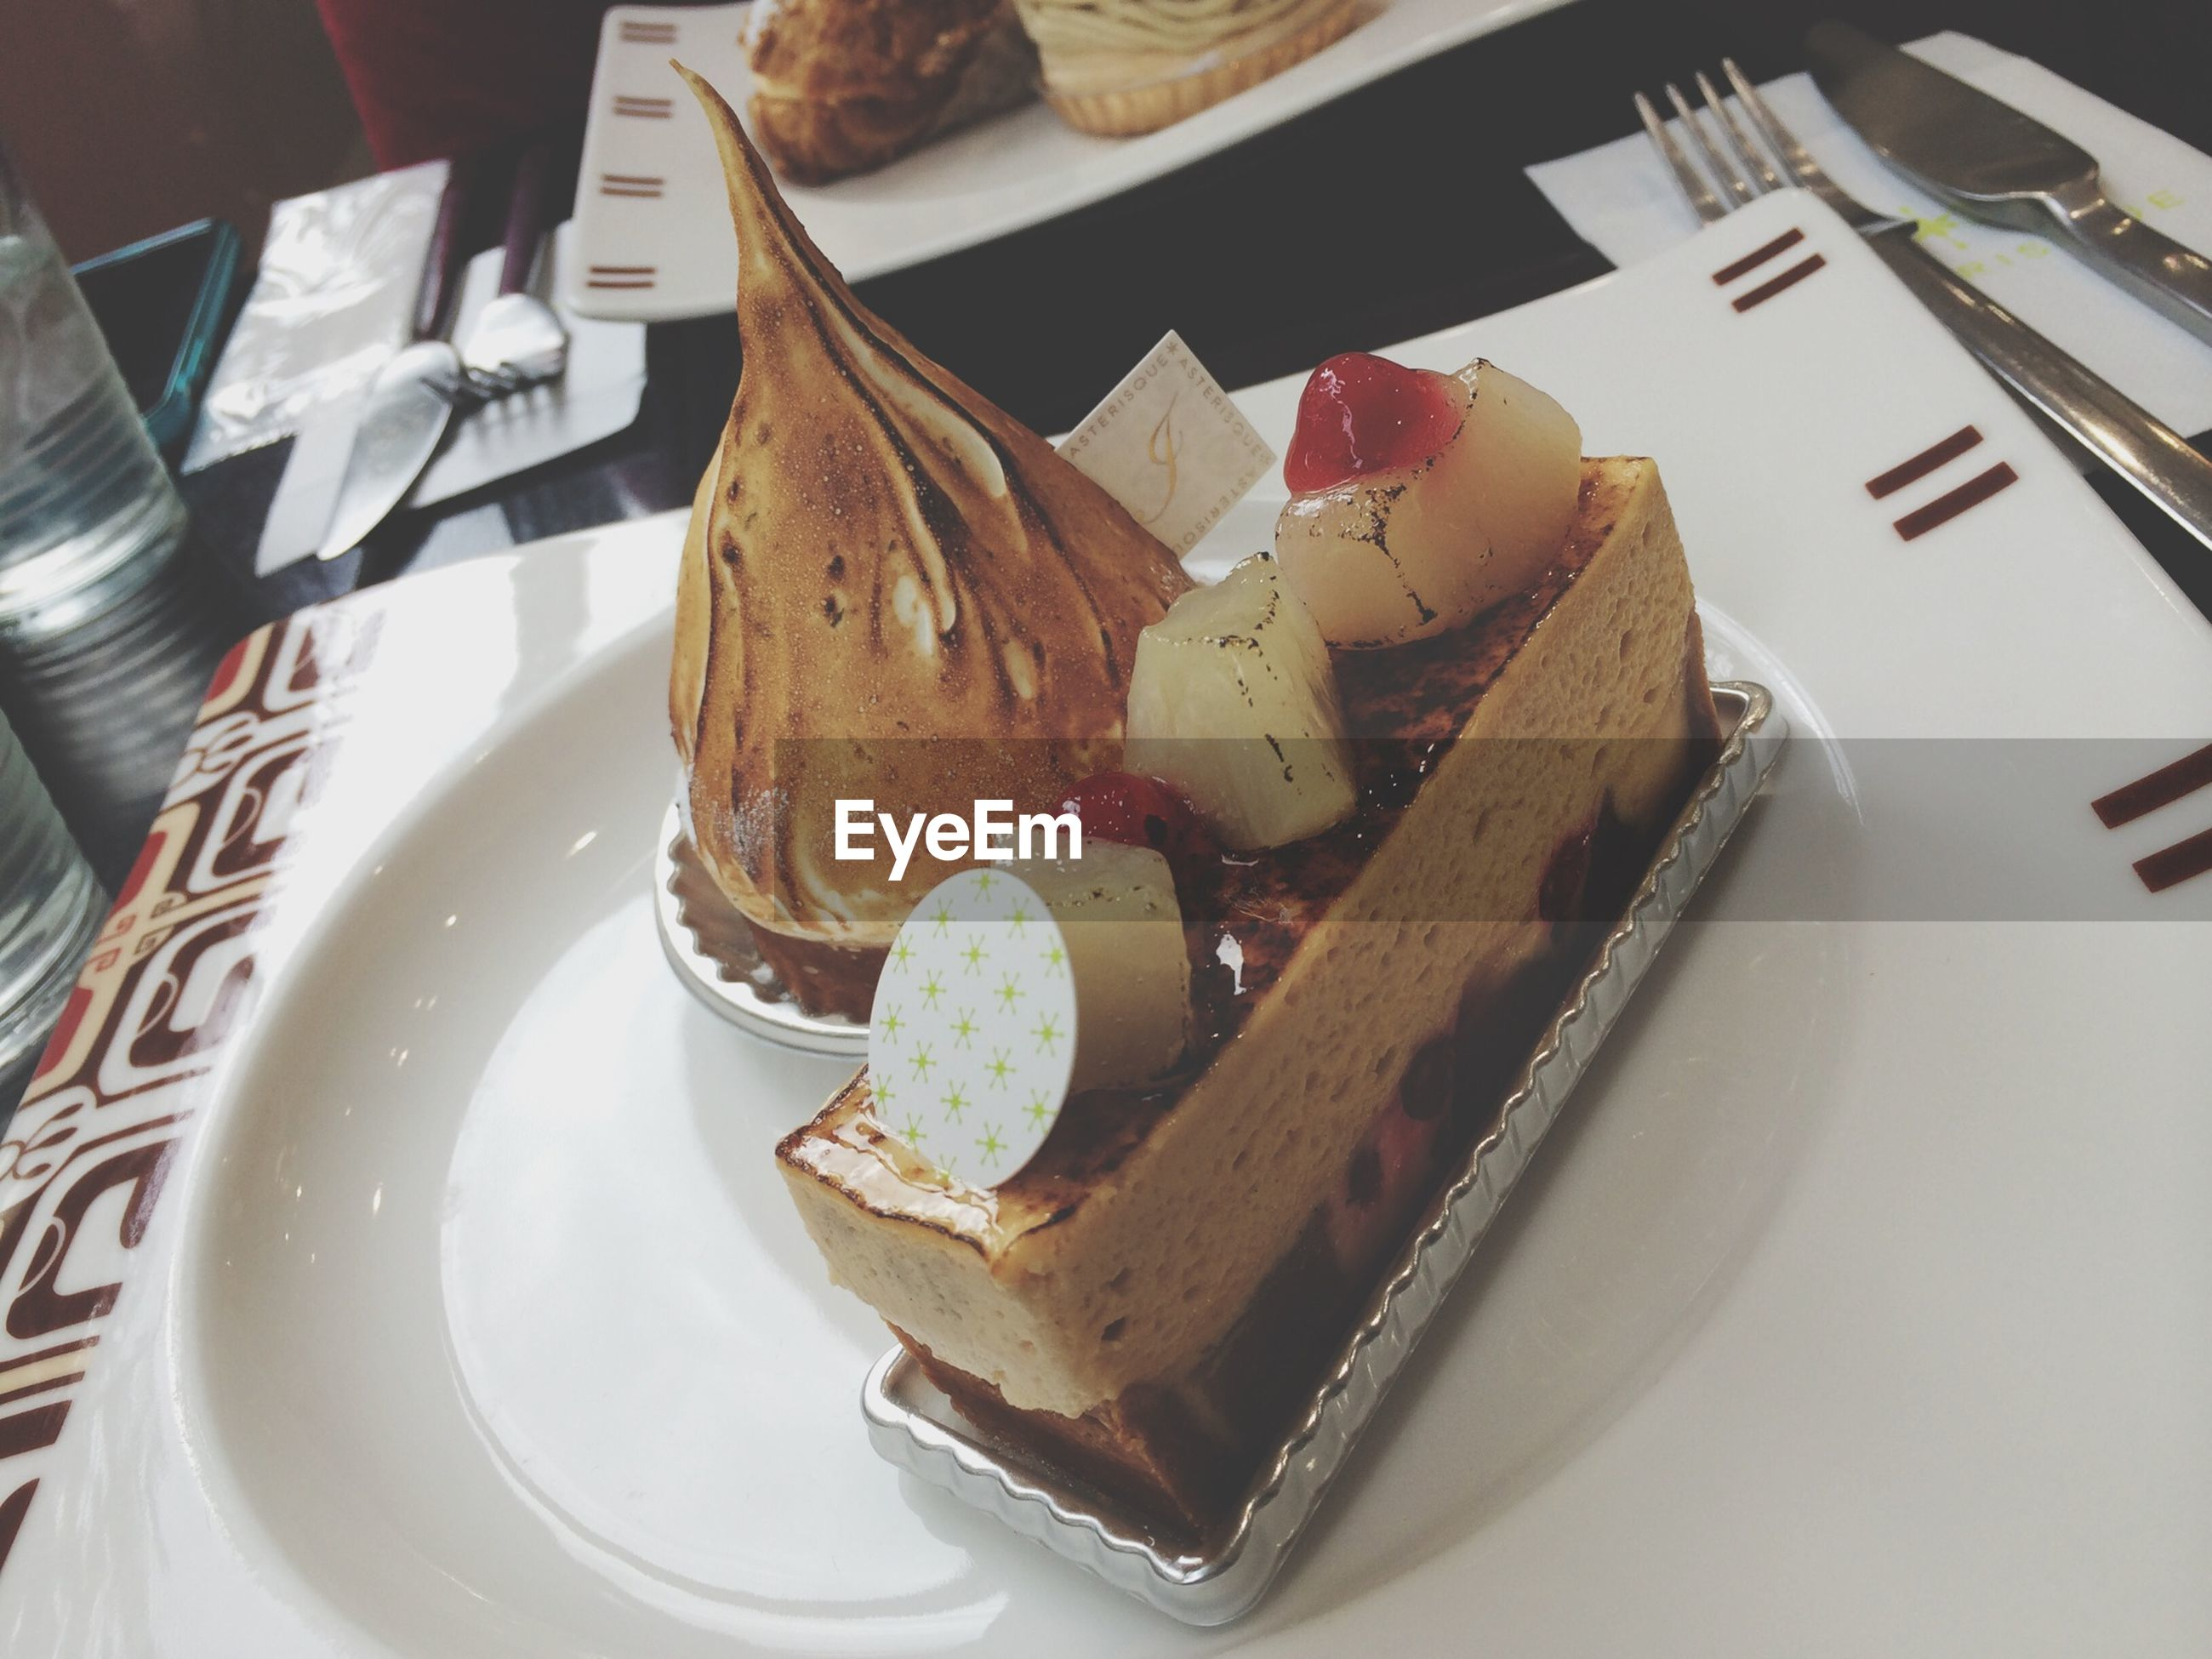 indoors, food and drink, food, plate, still life, sweet food, high angle view, ready-to-eat, dessert, freshness, indulgence, table, cake, chocolate, fork, unhealthy eating, serving size, temptation, close-up, no people